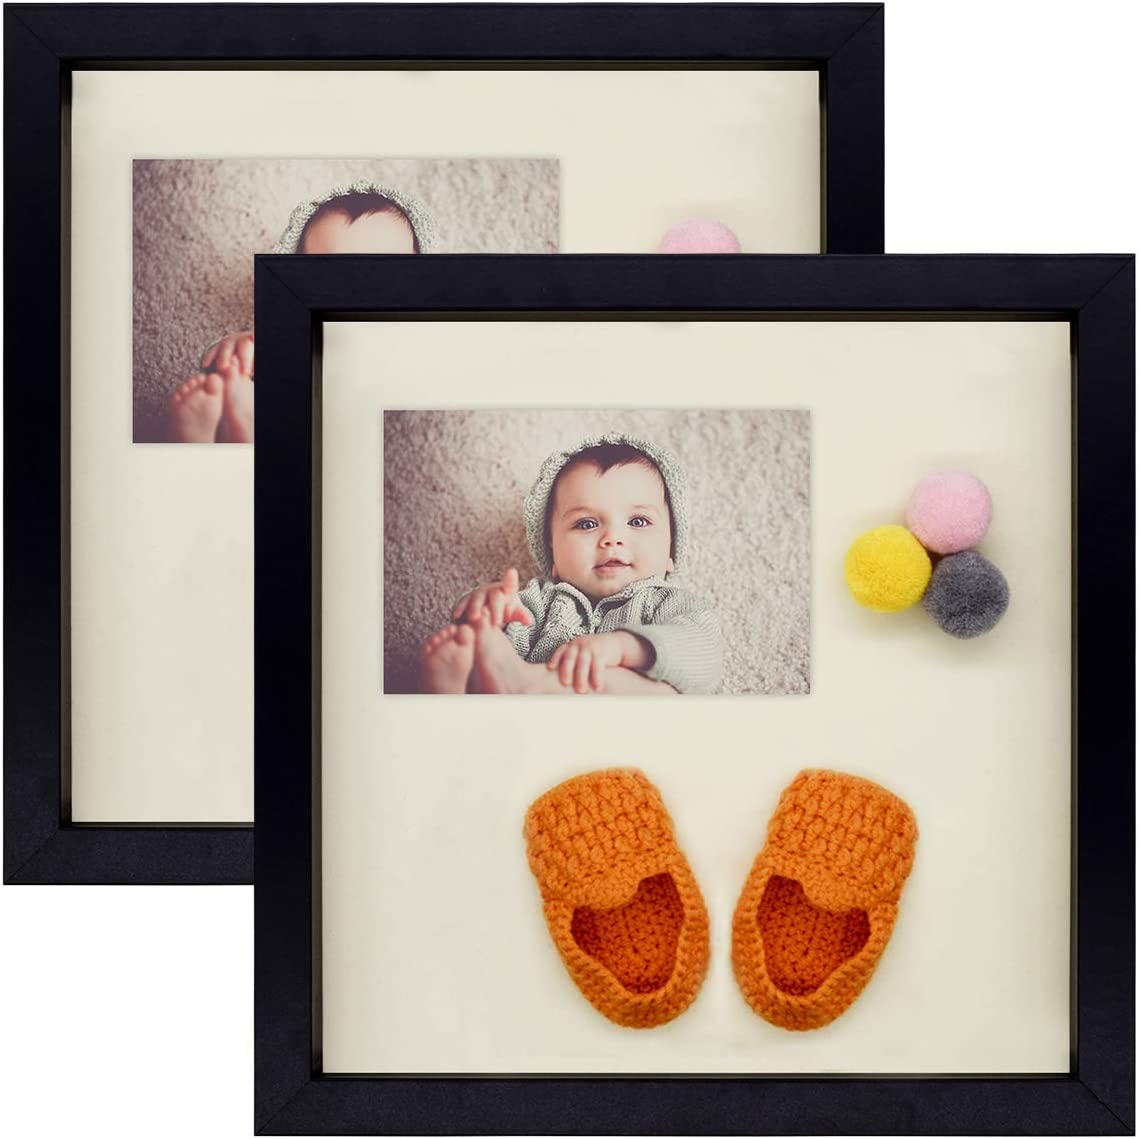 Gallery Wall Display Art 11x11, Black Great for Weddings Sawtooth Hanger Set of 2 Swivel Tabs Decorations Projects Frametory 11x11 Black Shadow Box Frame Includes Moveable Separator